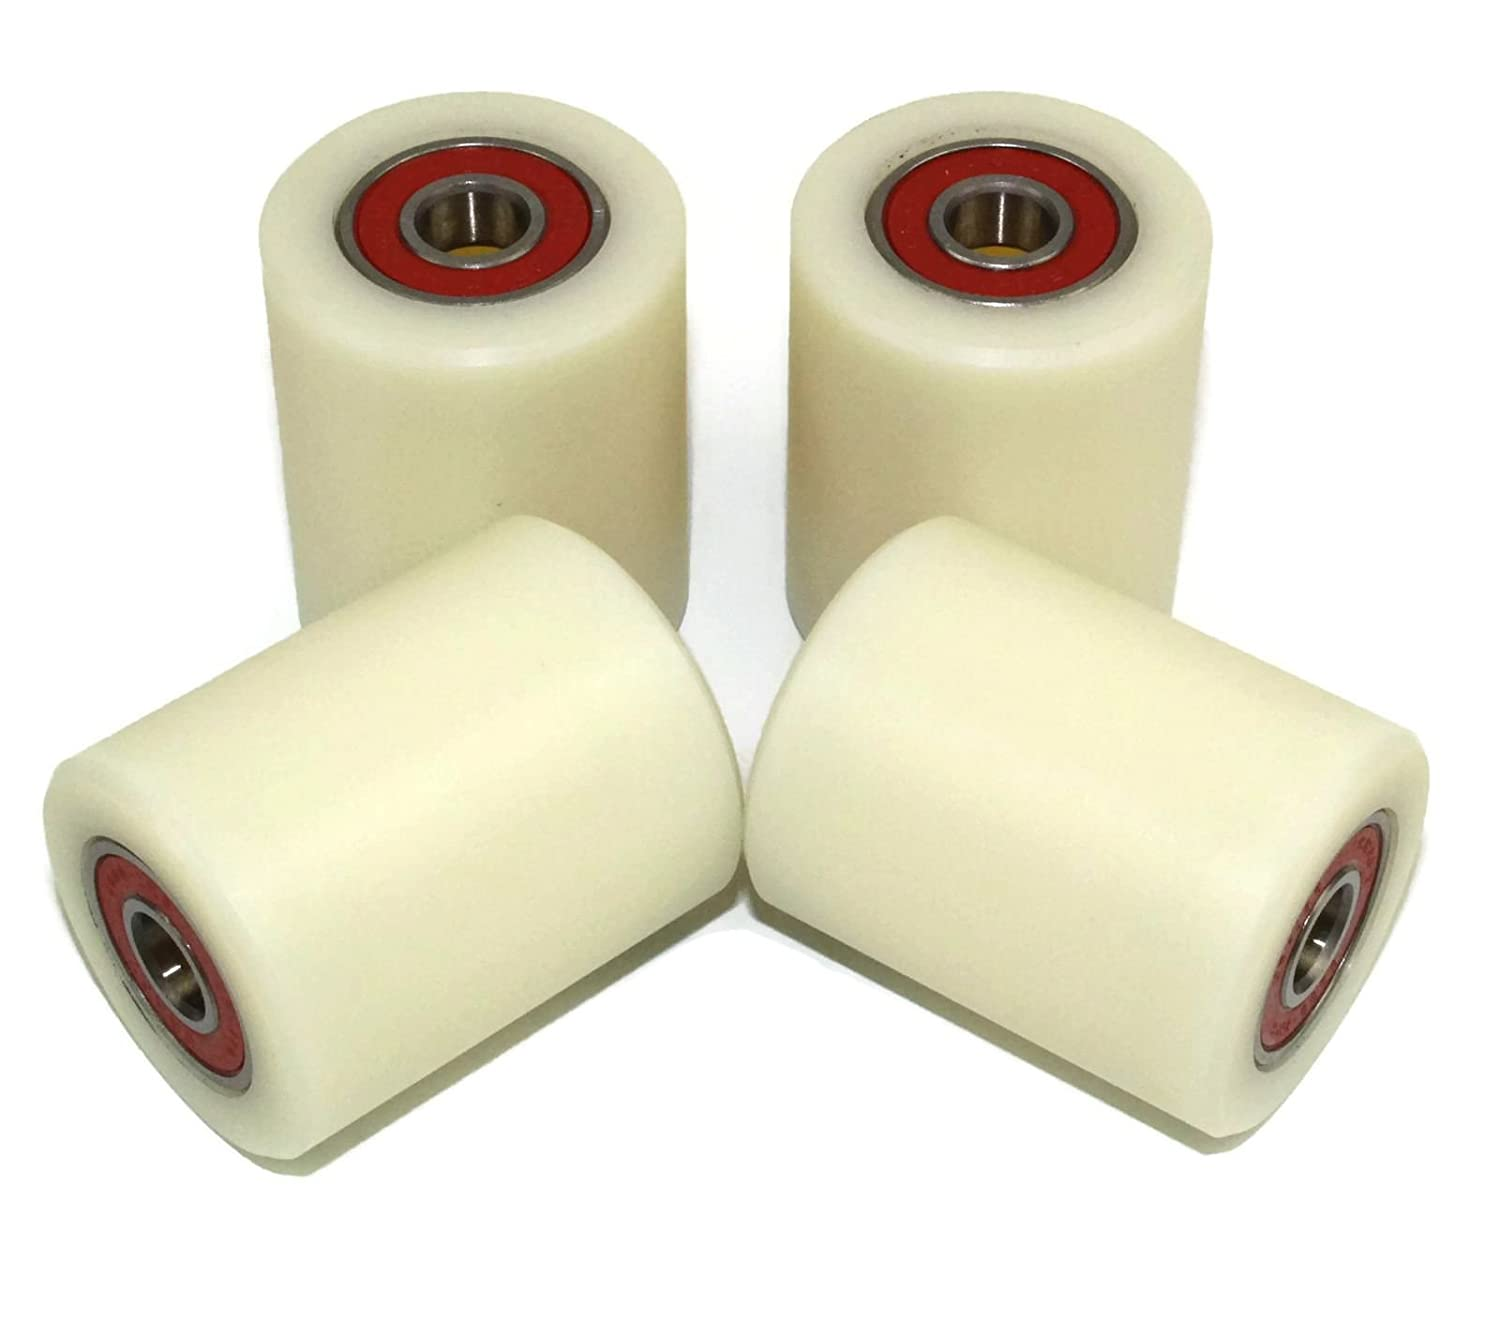 4 Pieces Nylon Polyamide Rollers 40 mm diameter 50 mm wide 10 mm bearing Precisely Machined in the EU(40-50-10) Smart Machines NyRoller30106